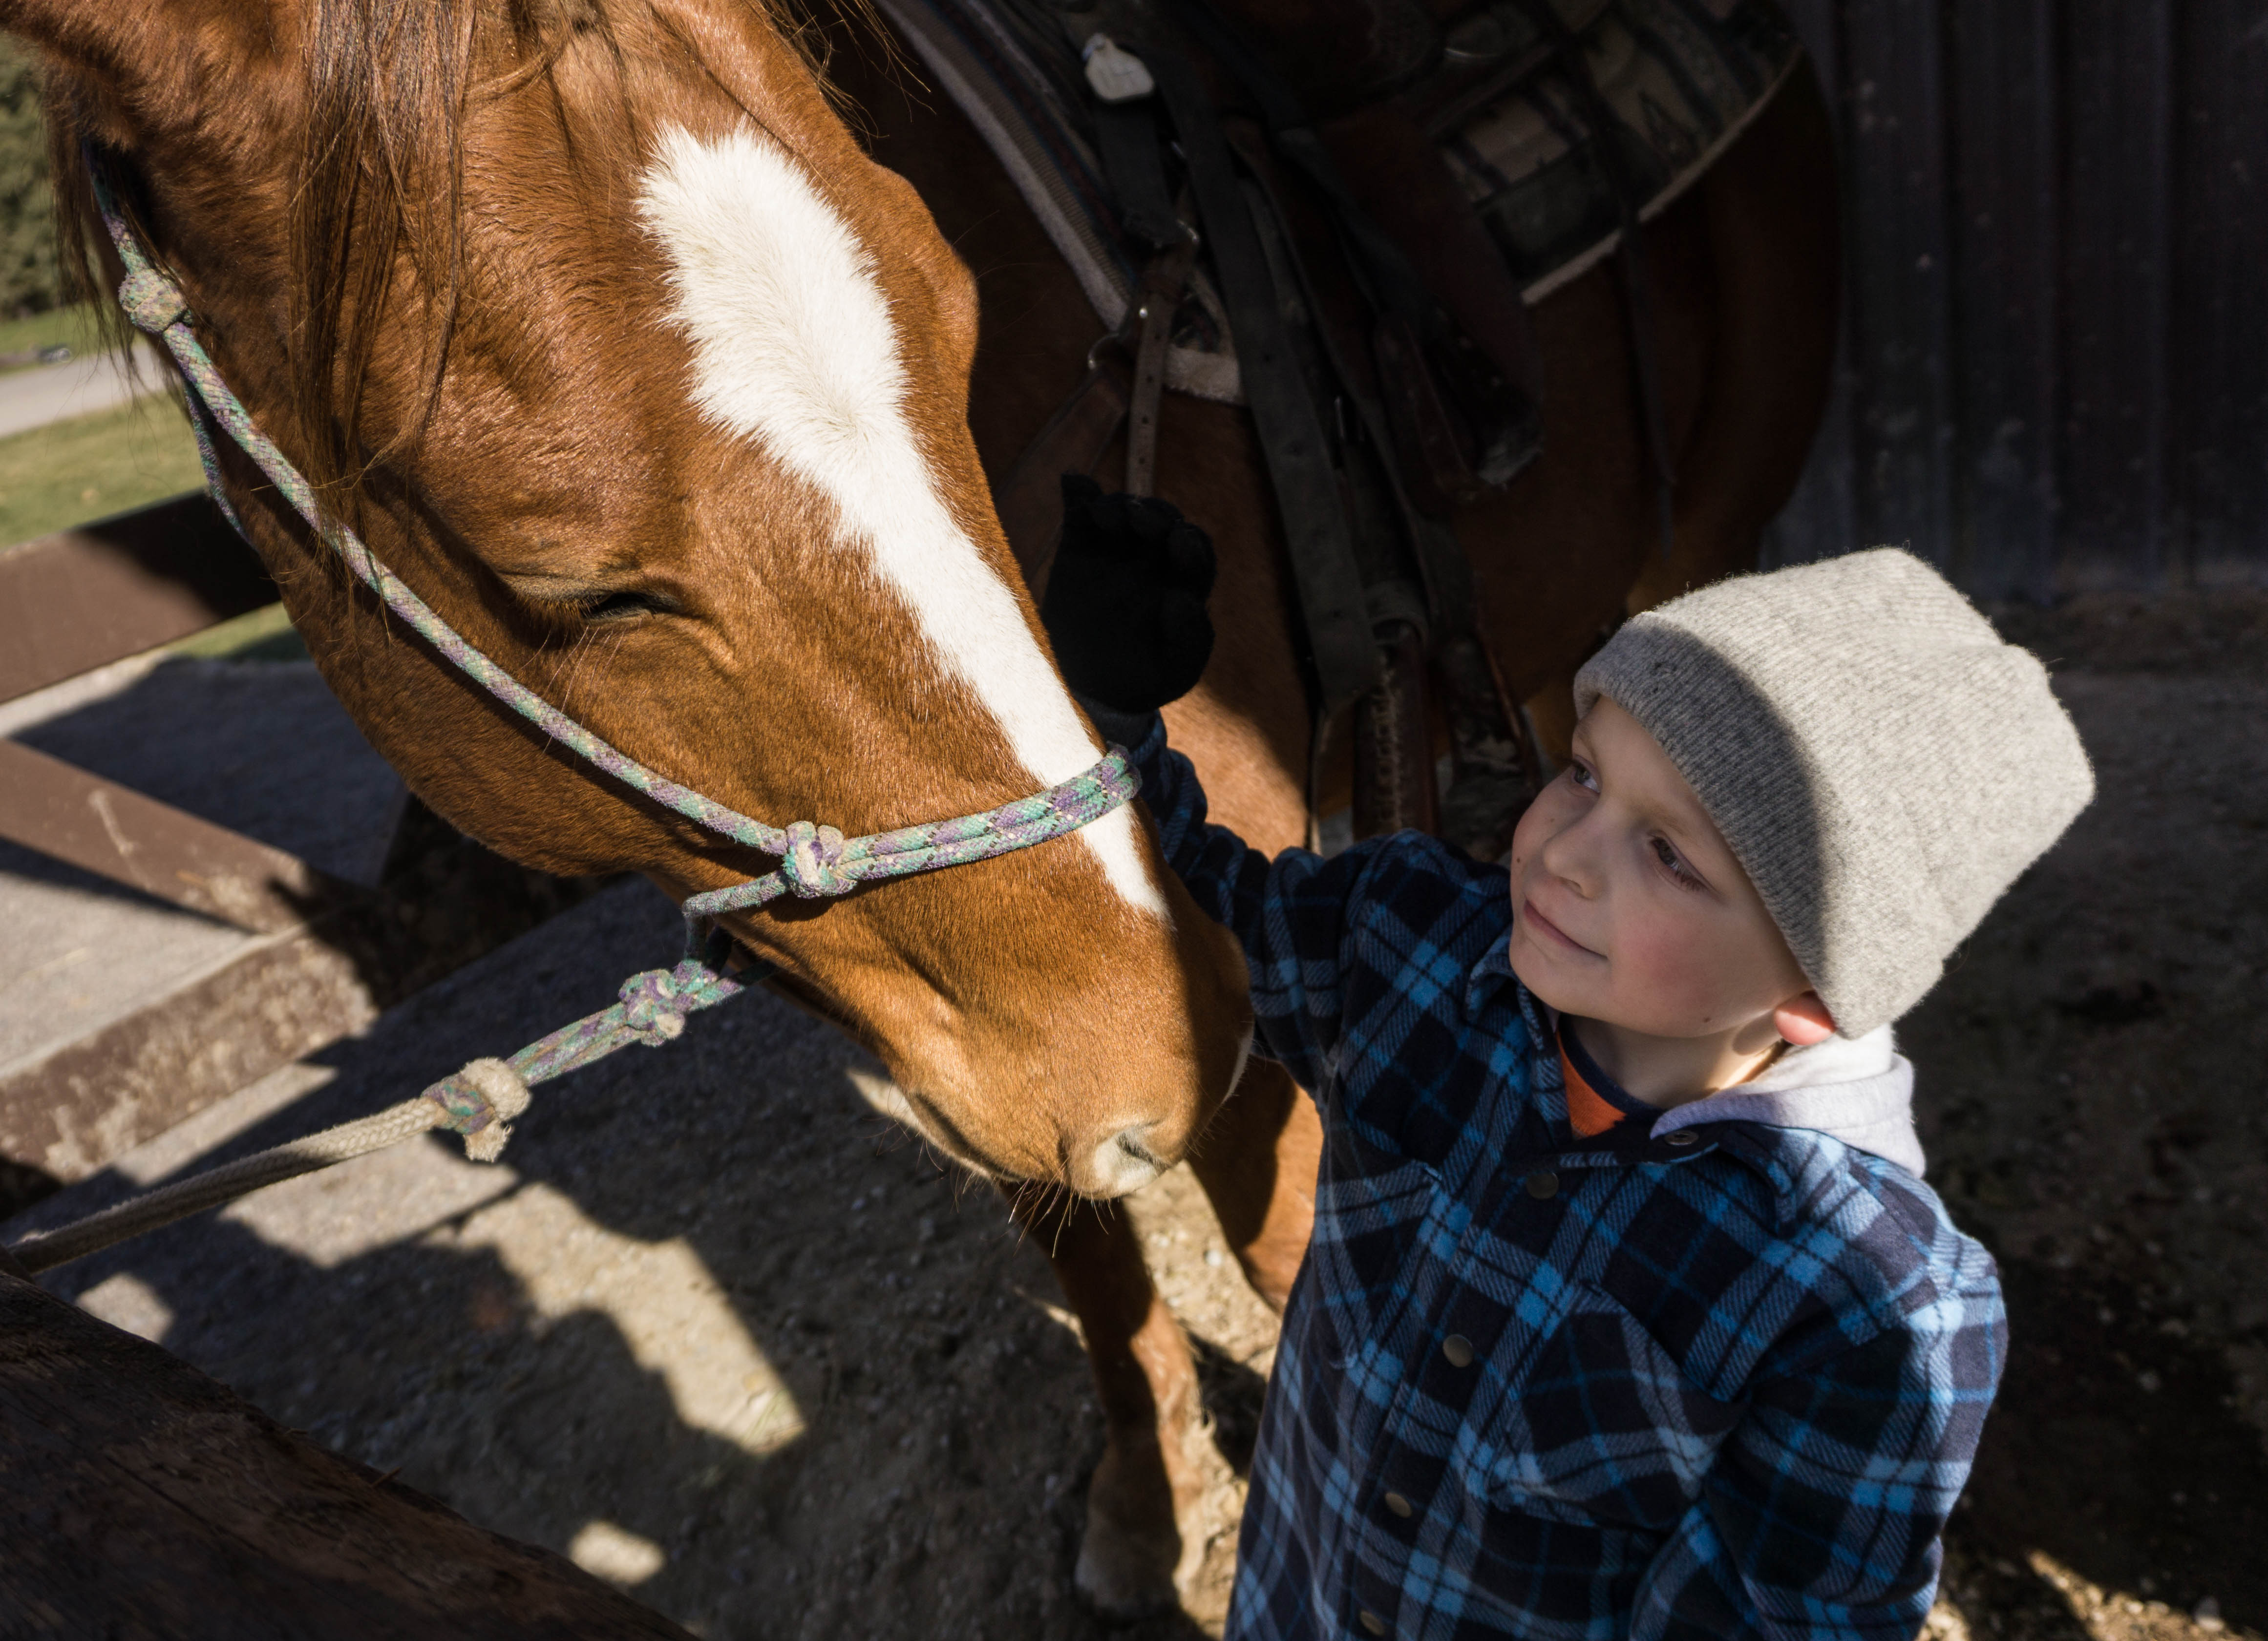 Just a Boy and His Horse | Lasting Connections